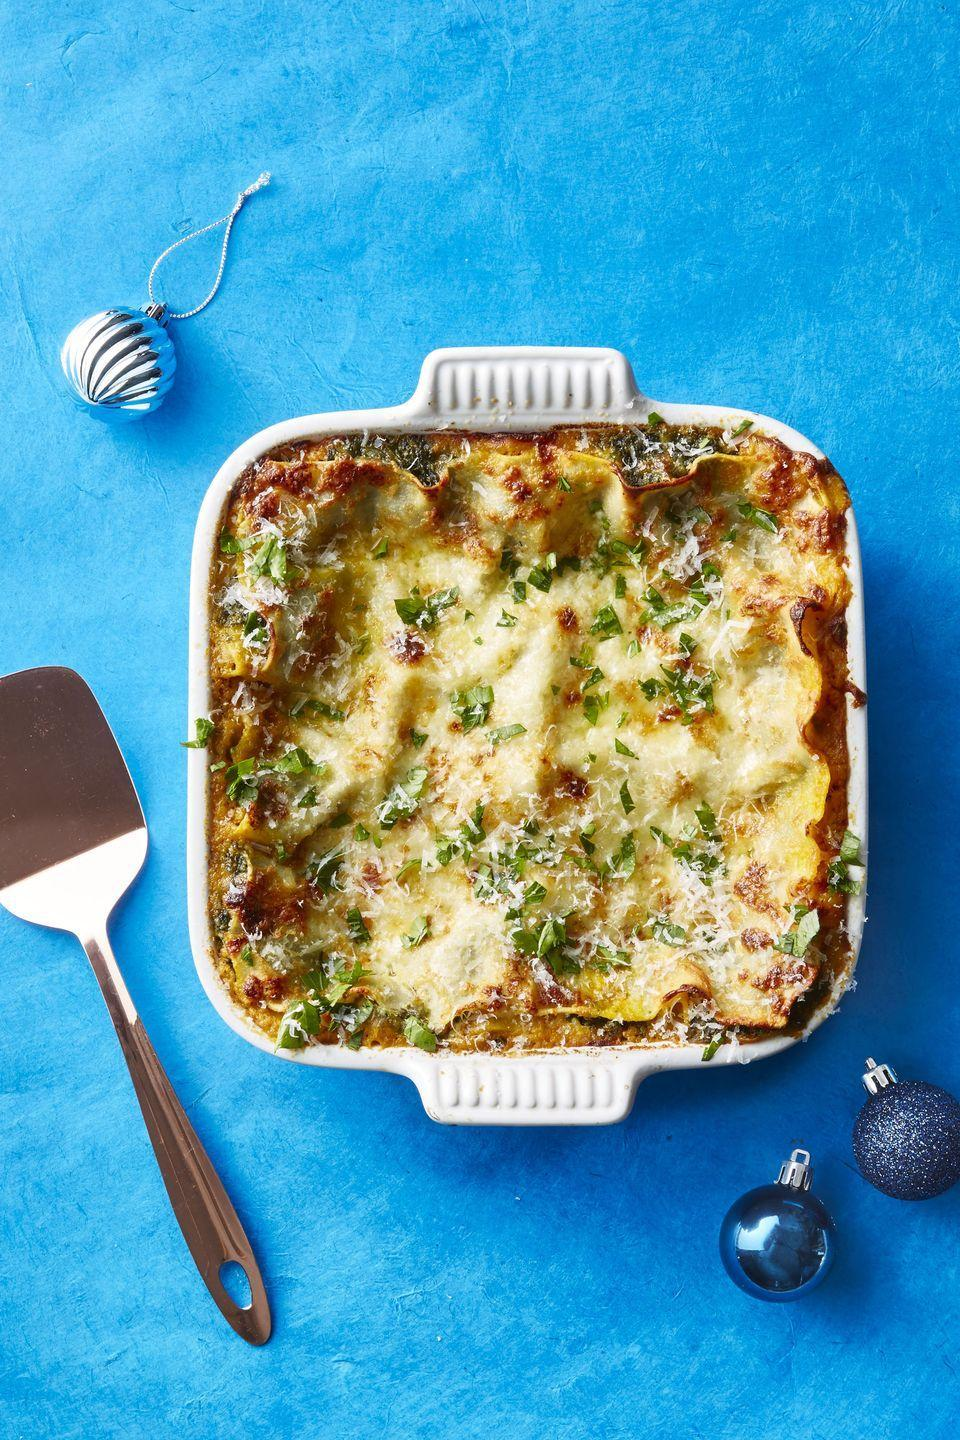 "<p>Lasagna is a family-favorite no matter how you slice it, and this cold-weather version is no exception. </p><p><a href=""https://www.goodhousekeeping.com/food-recipes/easy/a46935/winter-squash-and-spinach-lasagna-recipe/"" rel=""nofollow noopener"" target=""_blank"" data-ylk=""slk:Get the recipe Winter Squash and Spinach Lasagna »"" class=""link rapid-noclick-resp""><em>Get the recipe Winter Squash and Spinach Lasagna »</em></a></p>"